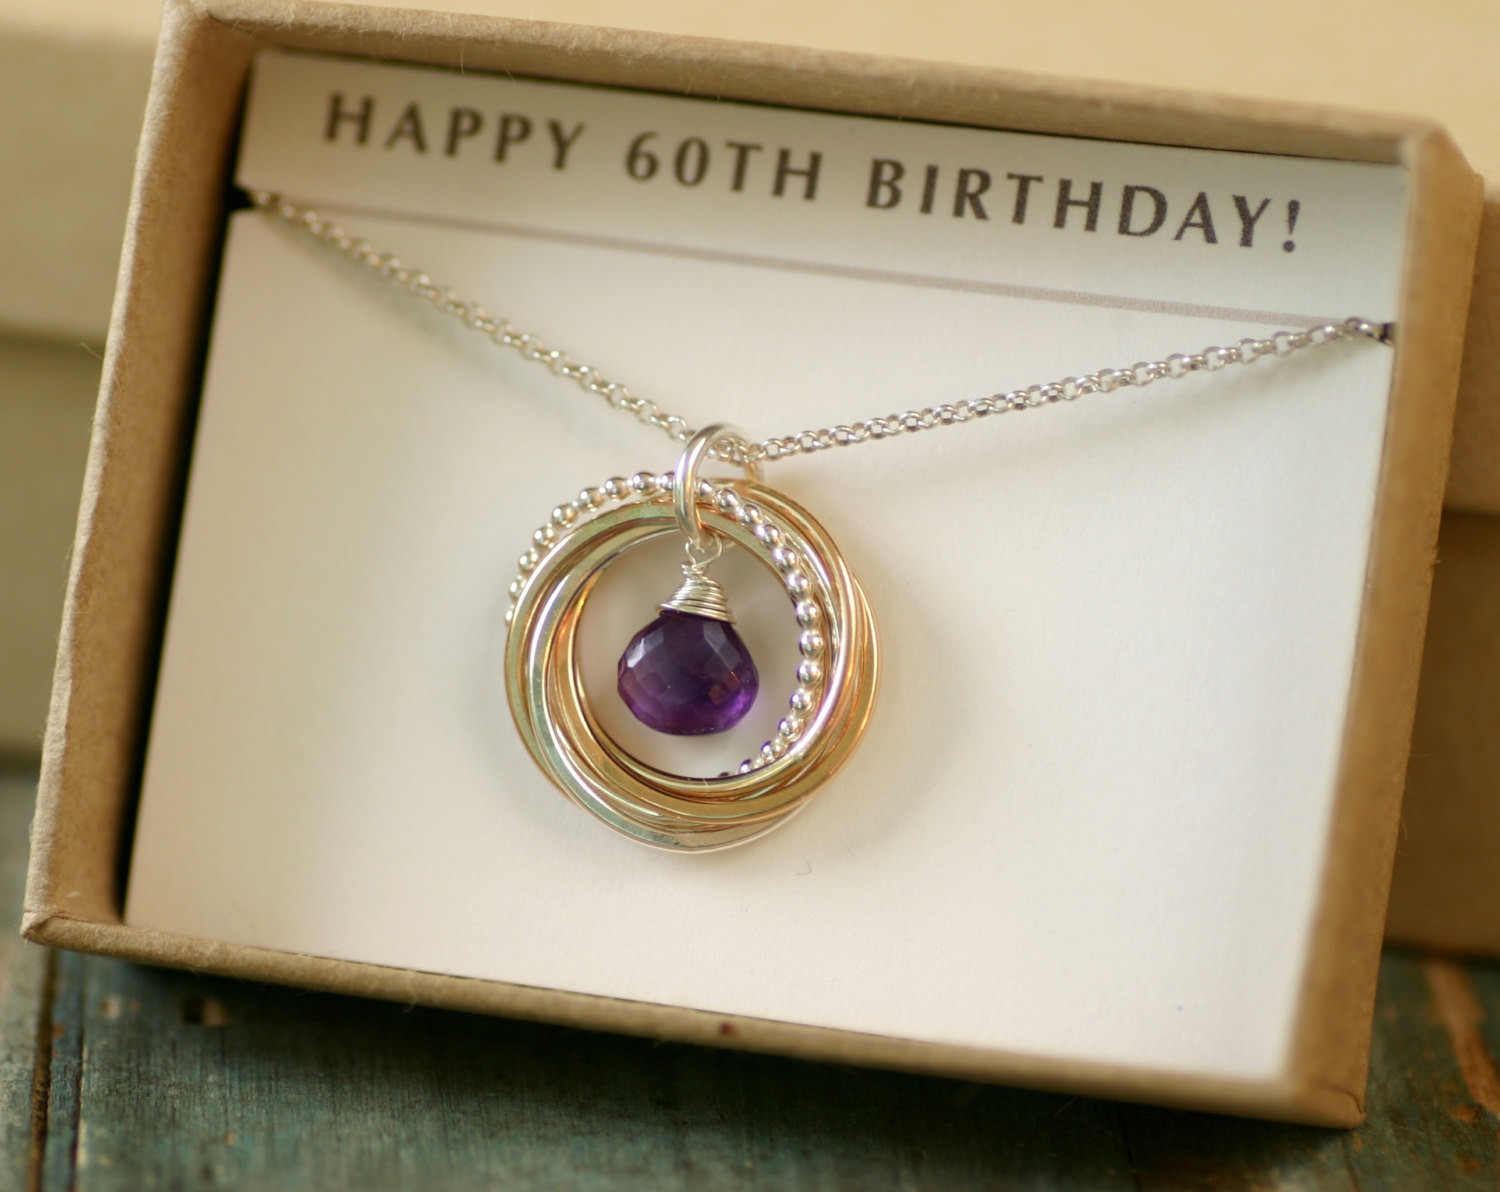 60Th Birthday Gift Ideas For Her  60th birthday t for her amethyst necklace for women